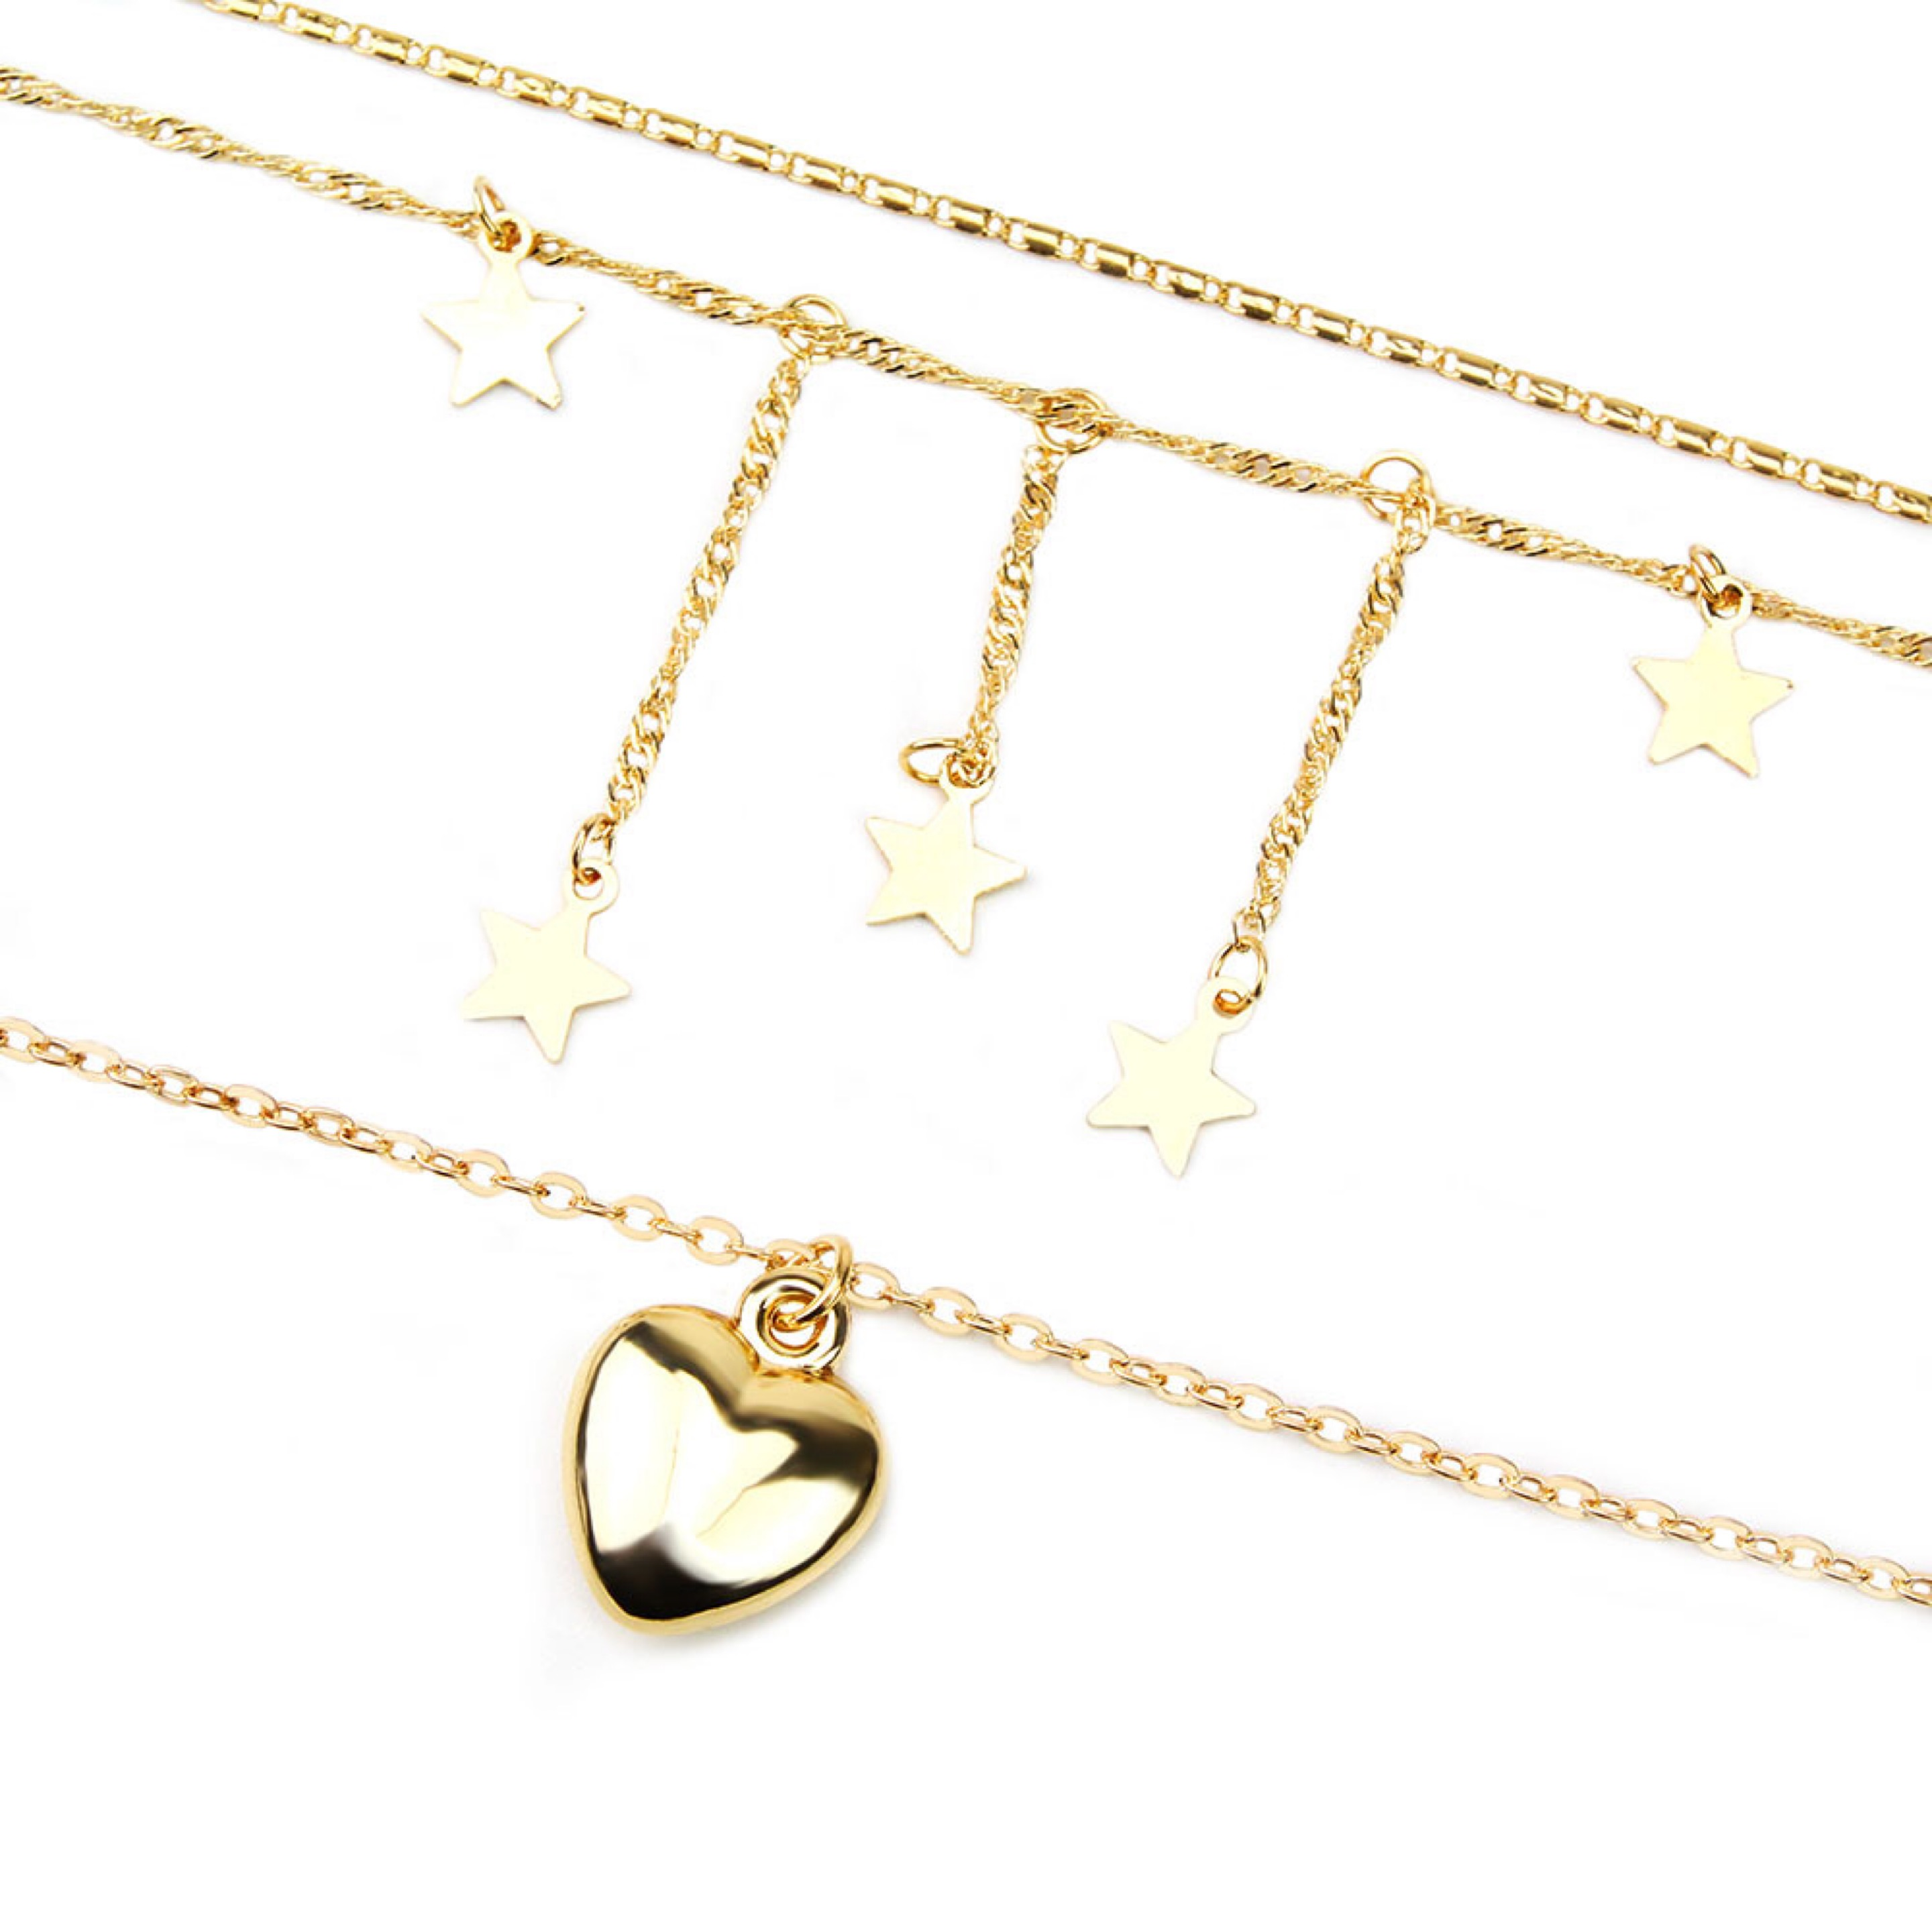 Heart Multi Layer Long Chain Neckalce For Women 2019 Heart Pendant Fashion Jewelry